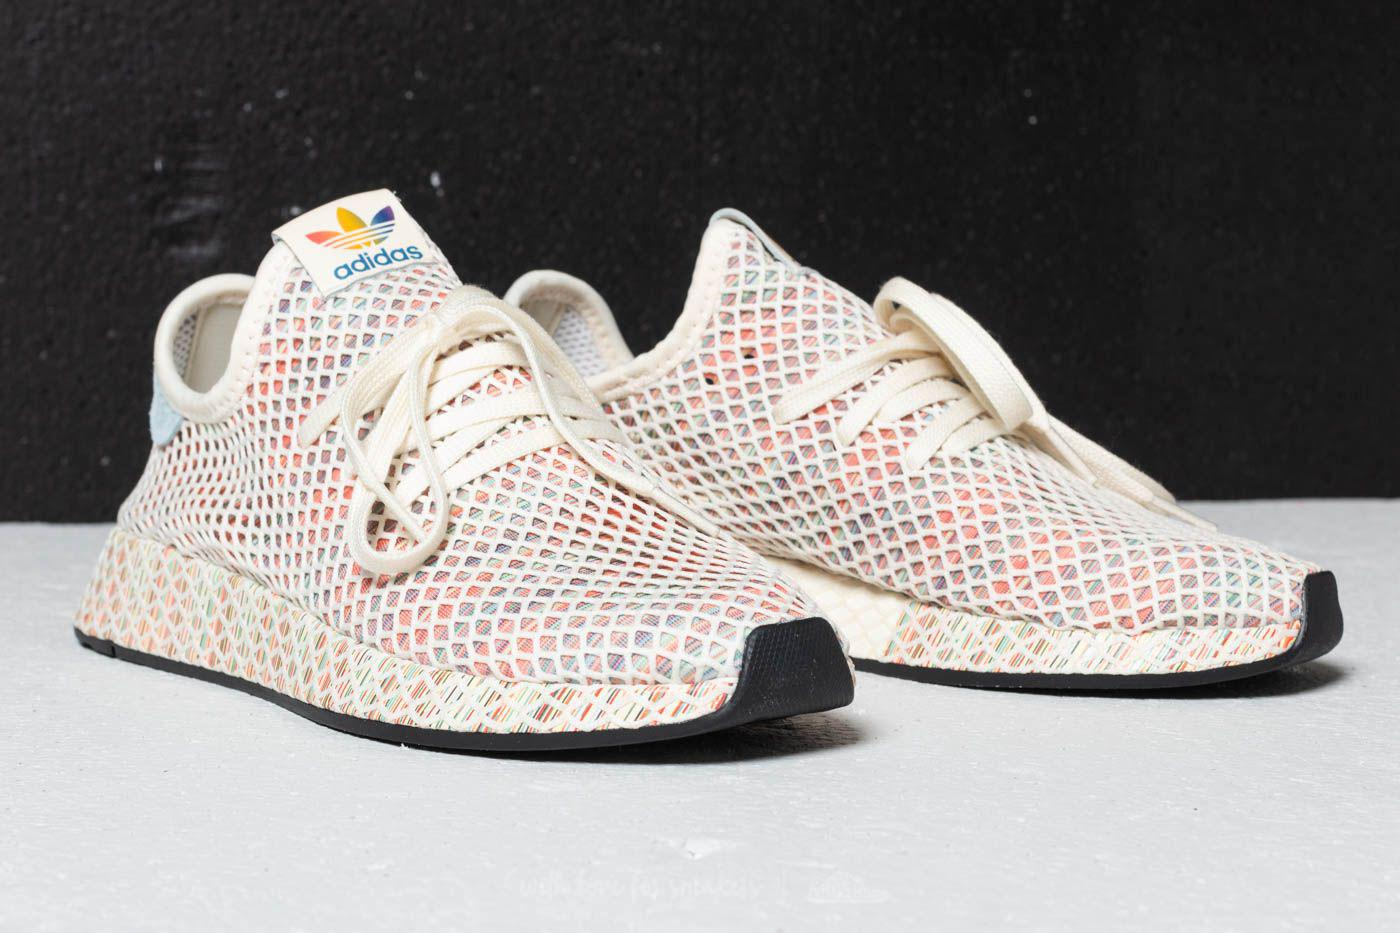 24c681e93 Lyst - adidas Originals Adidas Deerupt Pride Cream White  Ash Grey ...